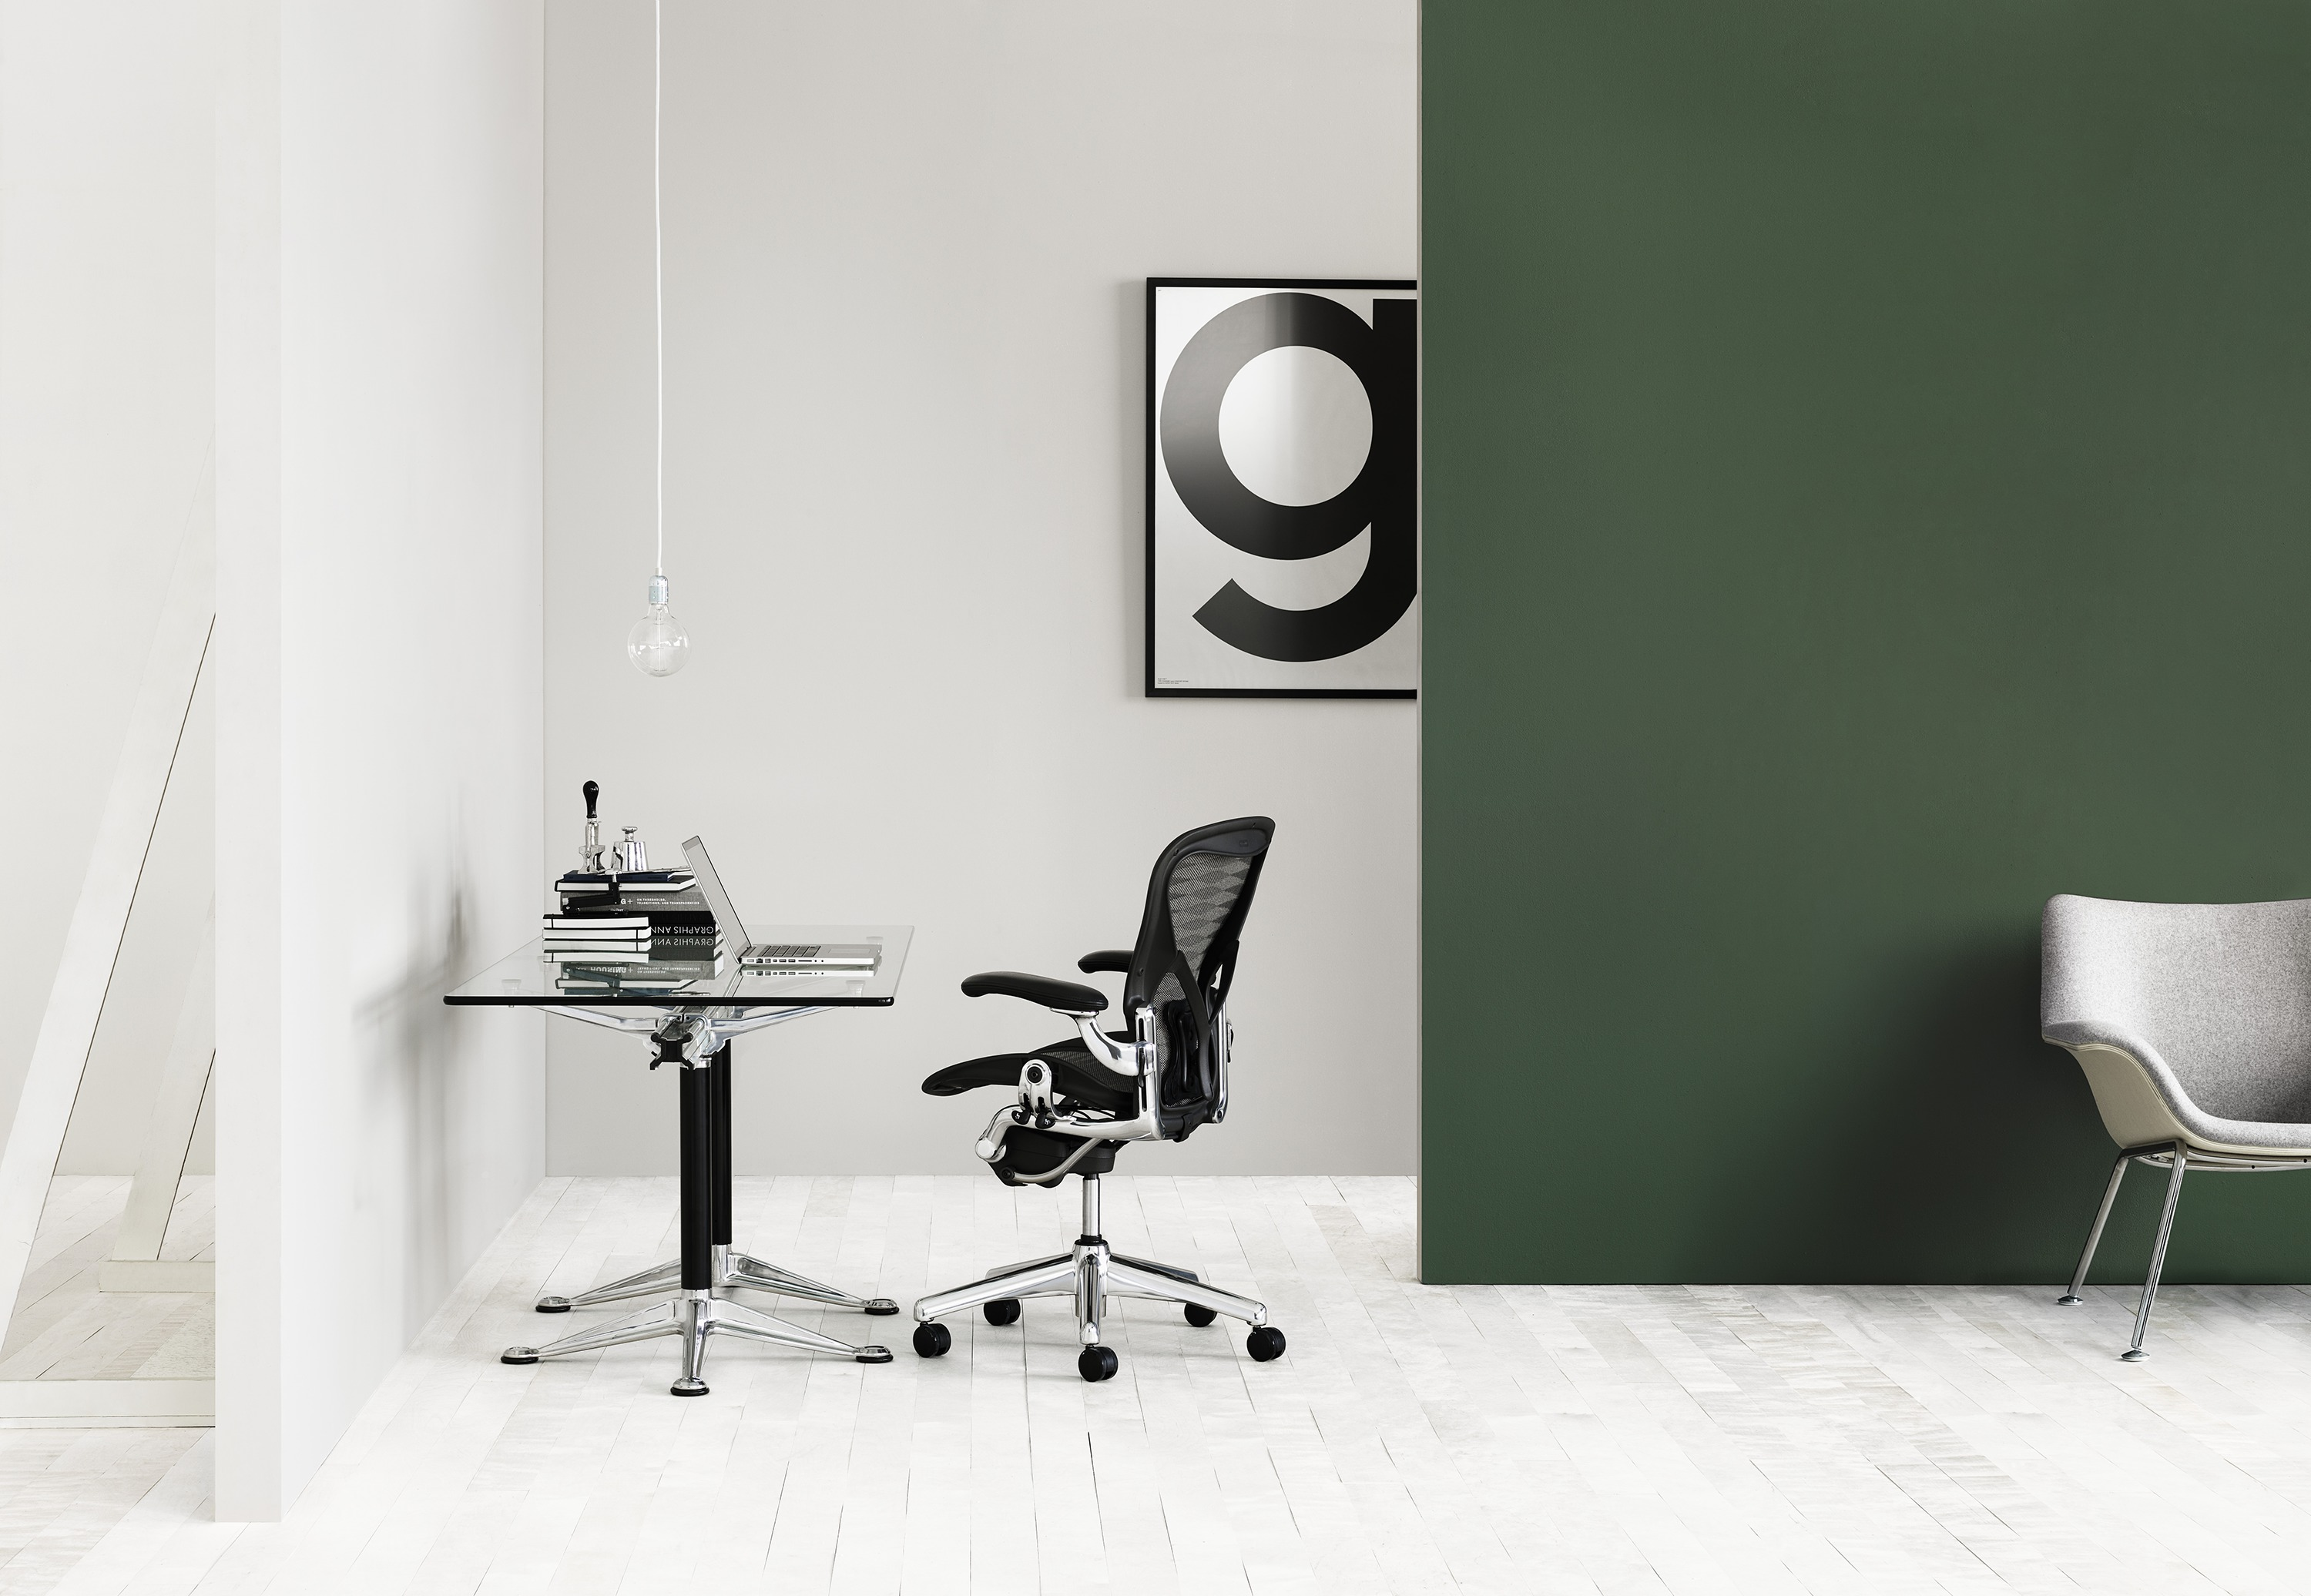 aeron-good-design